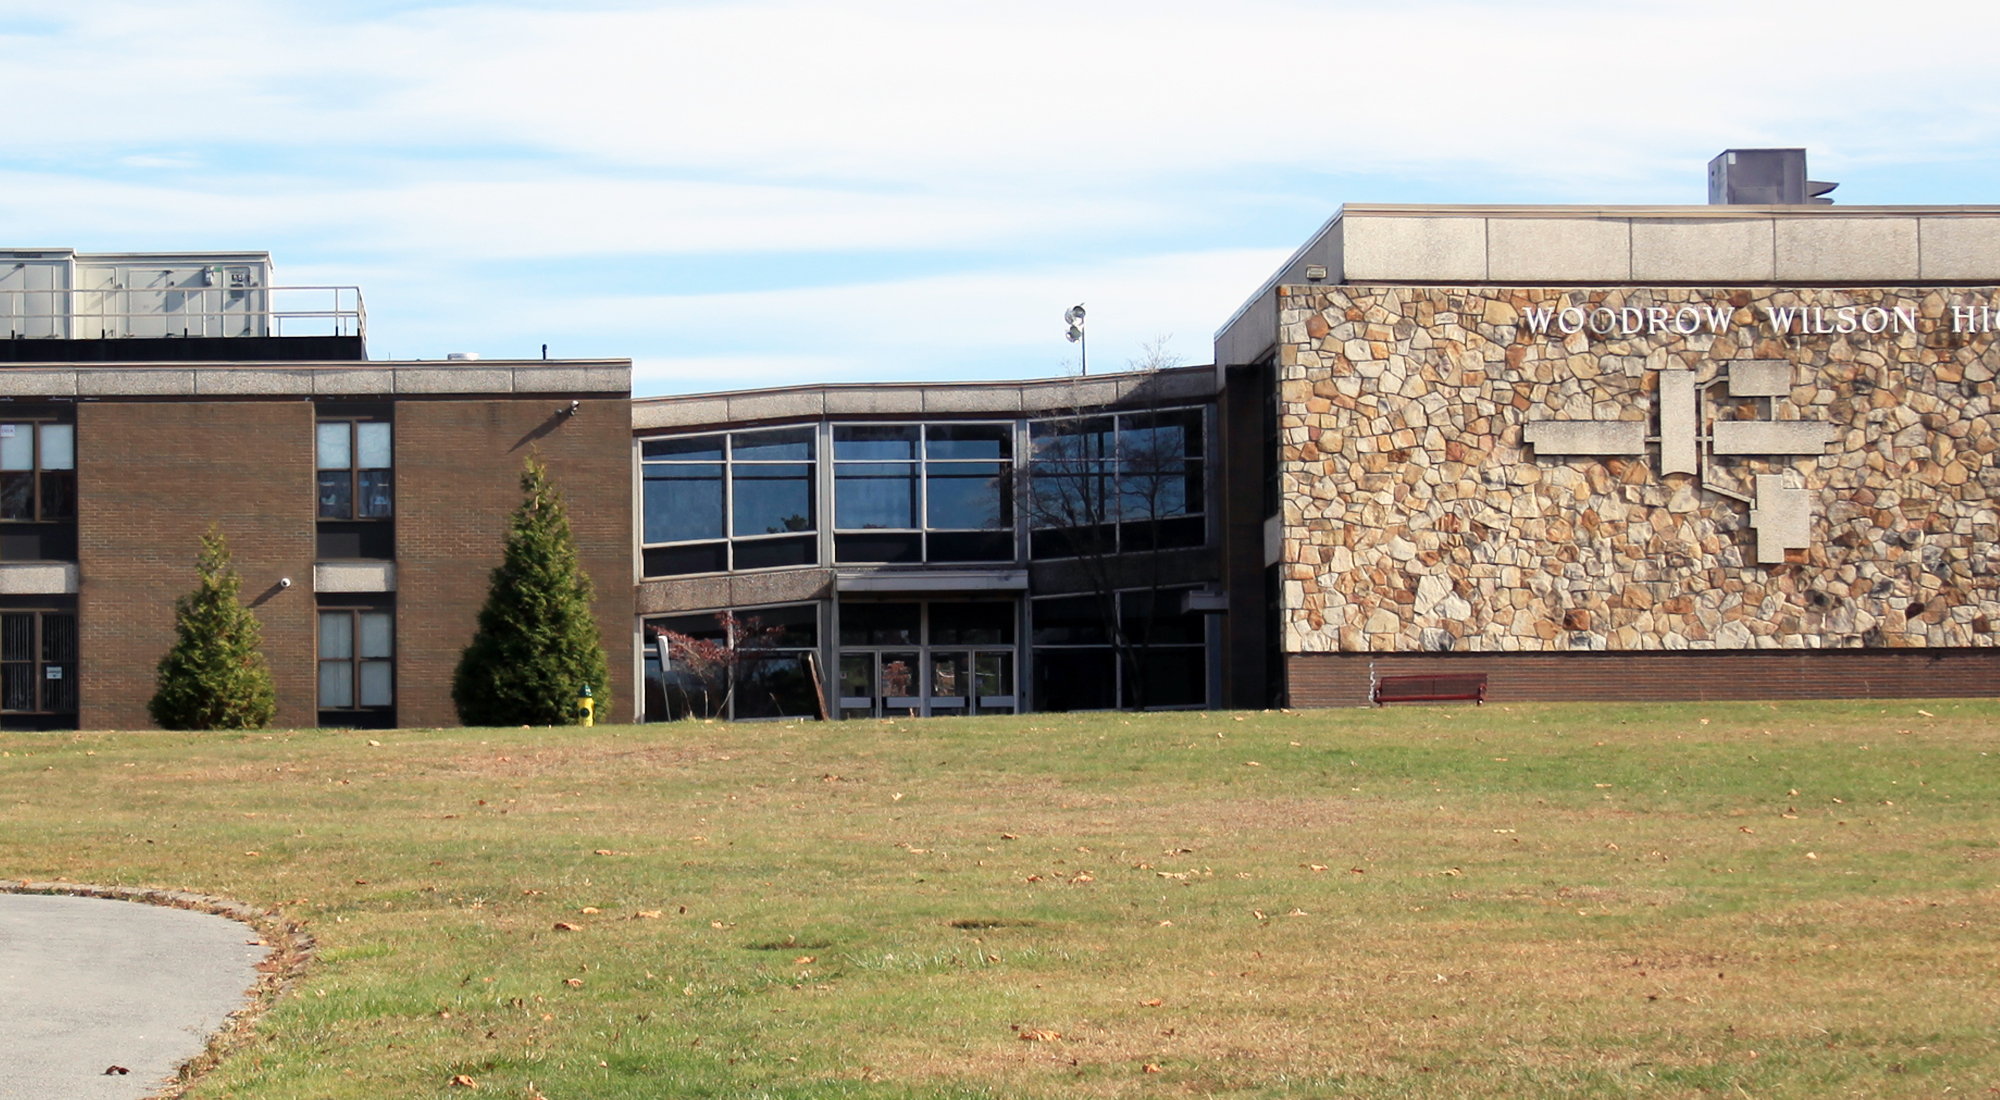 Woodrow Wilson High School